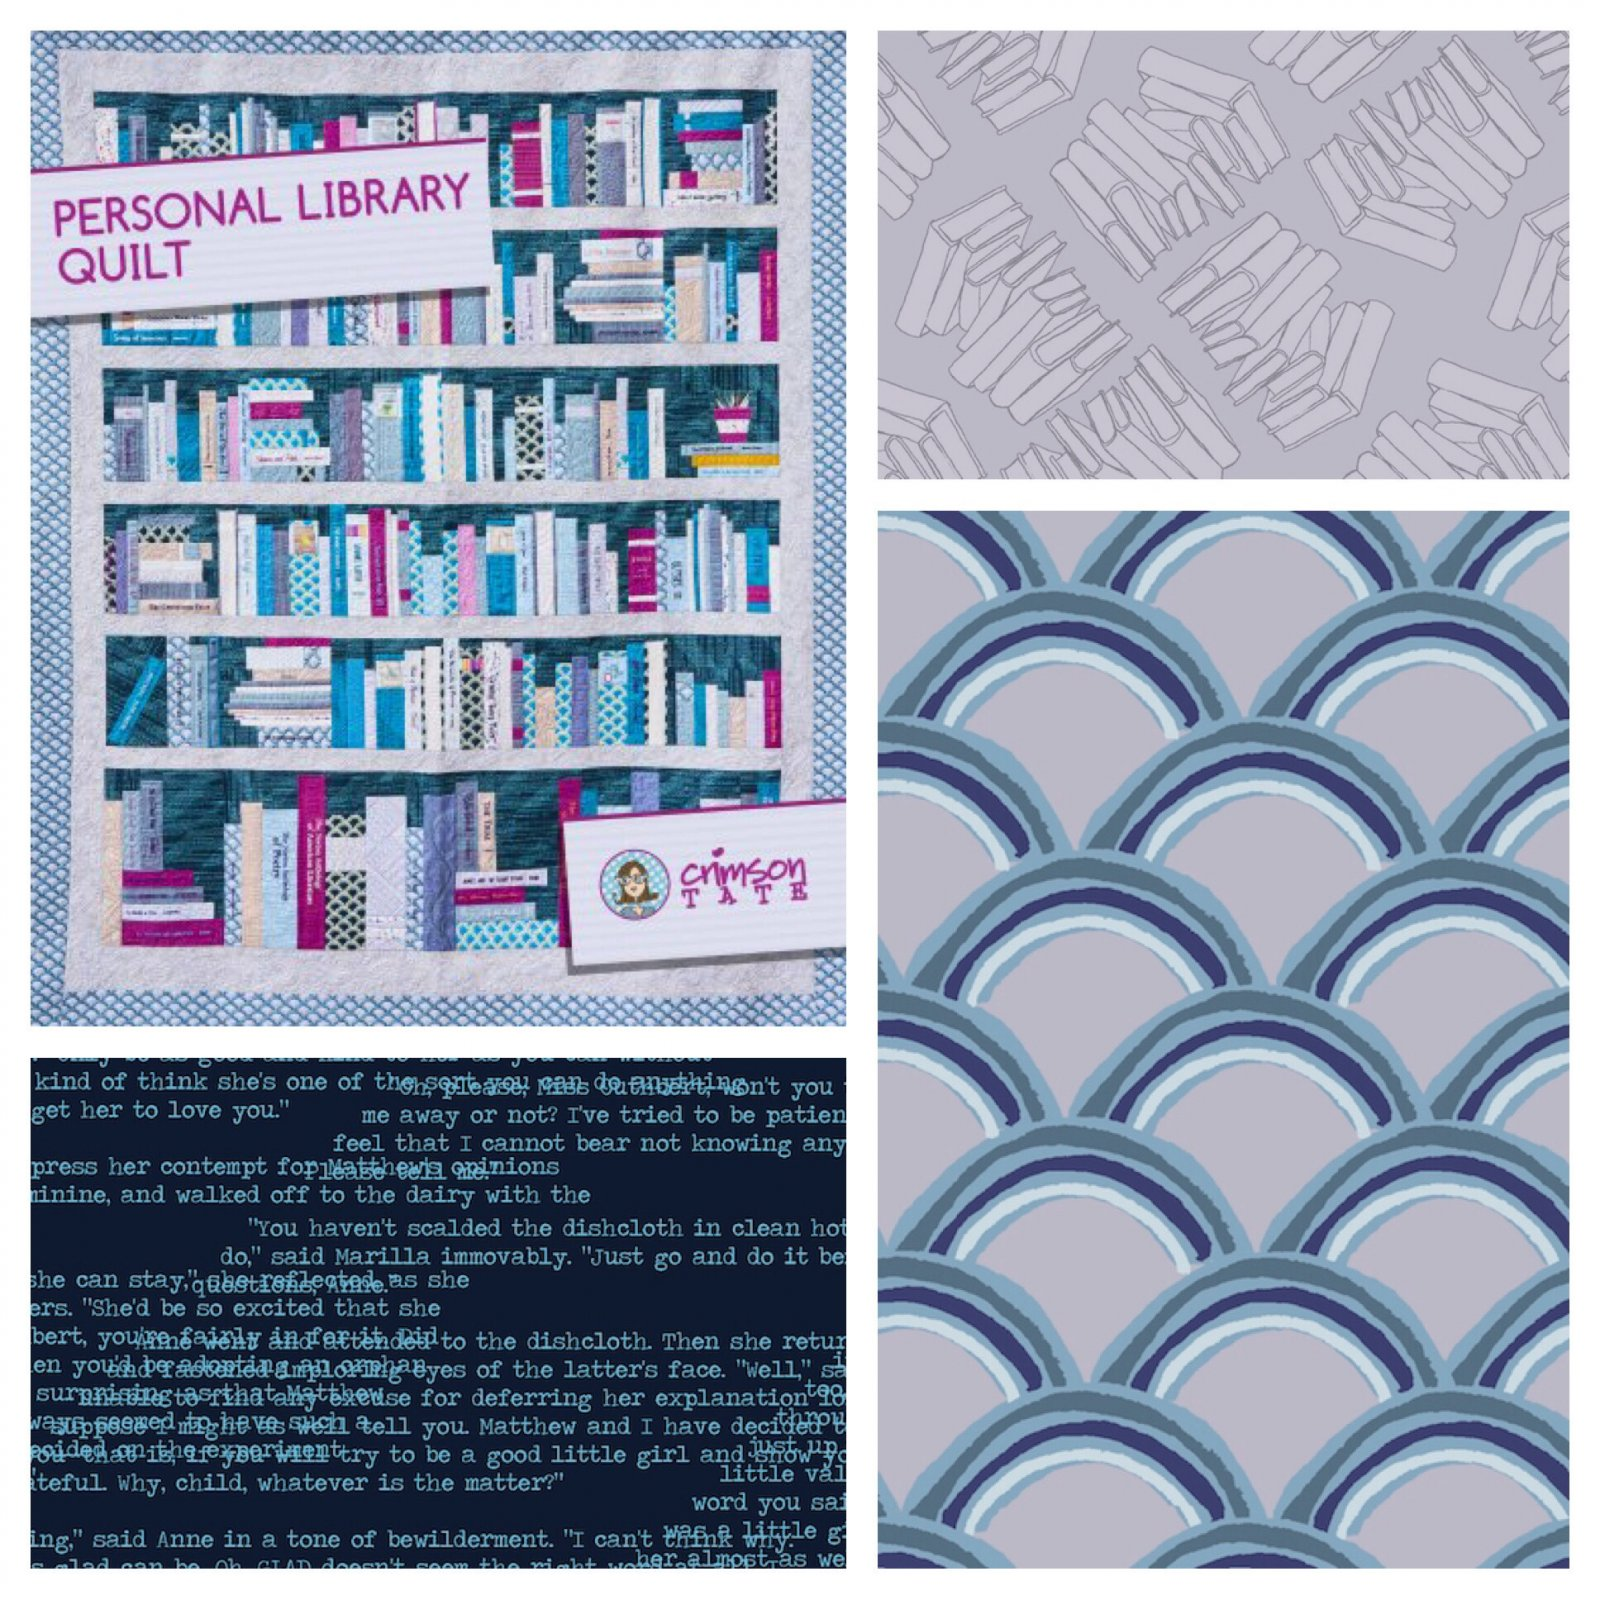 Personal Library Quilt Finishing Kit (Full)